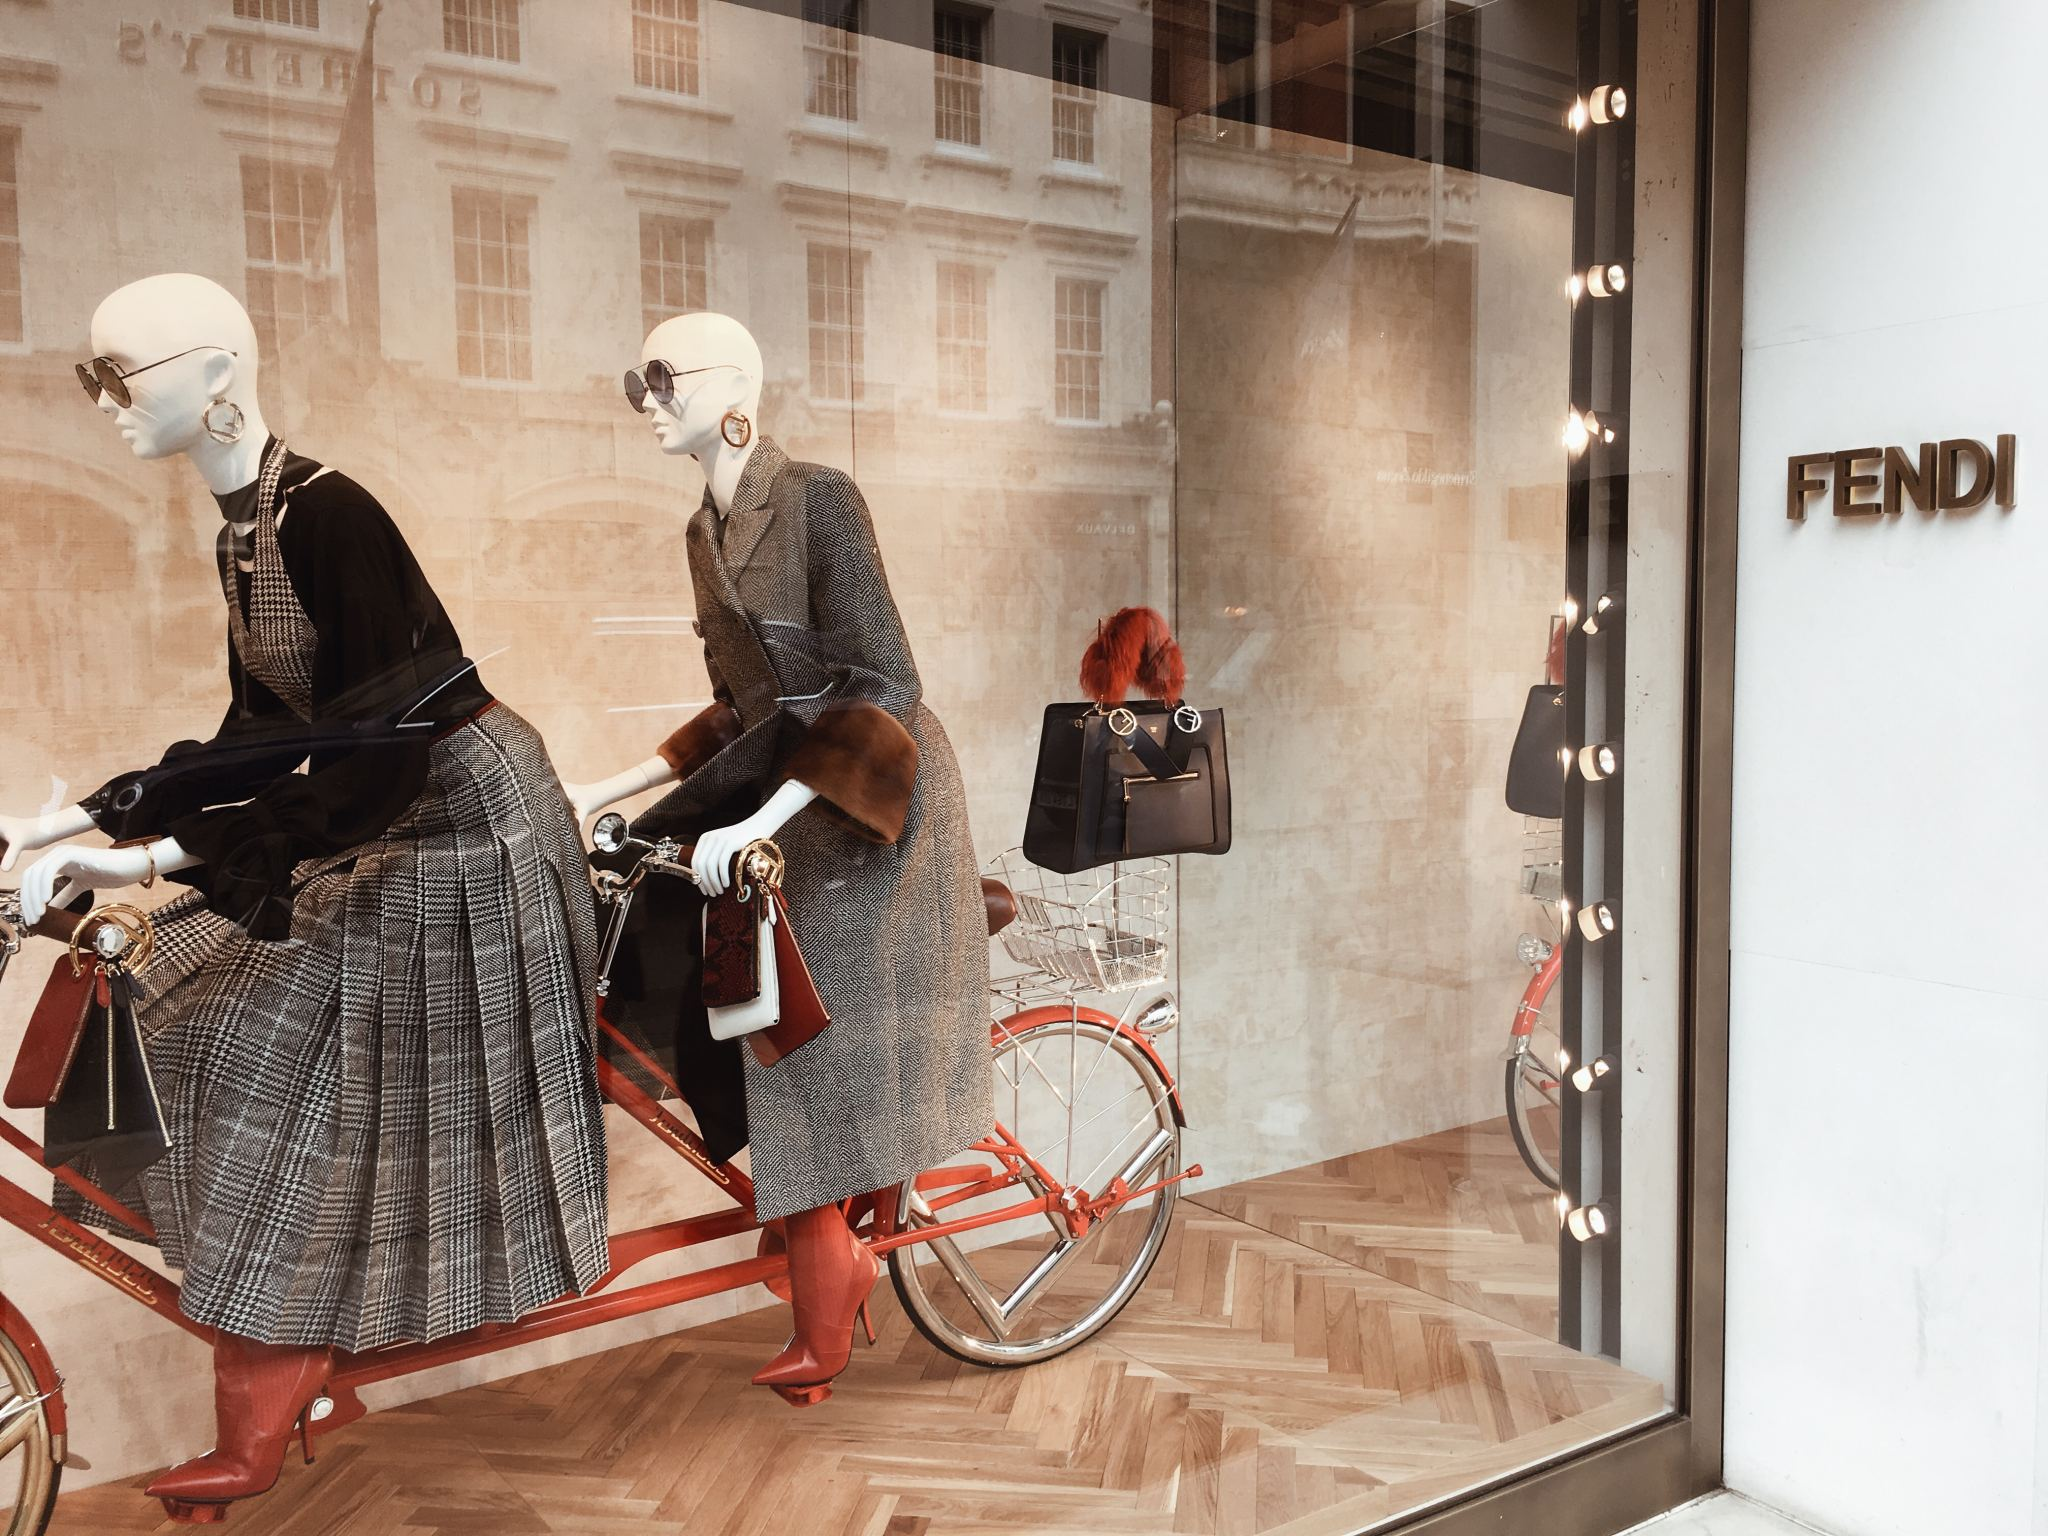 Fendi Bond Street Window Display cocoa Chelsea window shopping bicycle